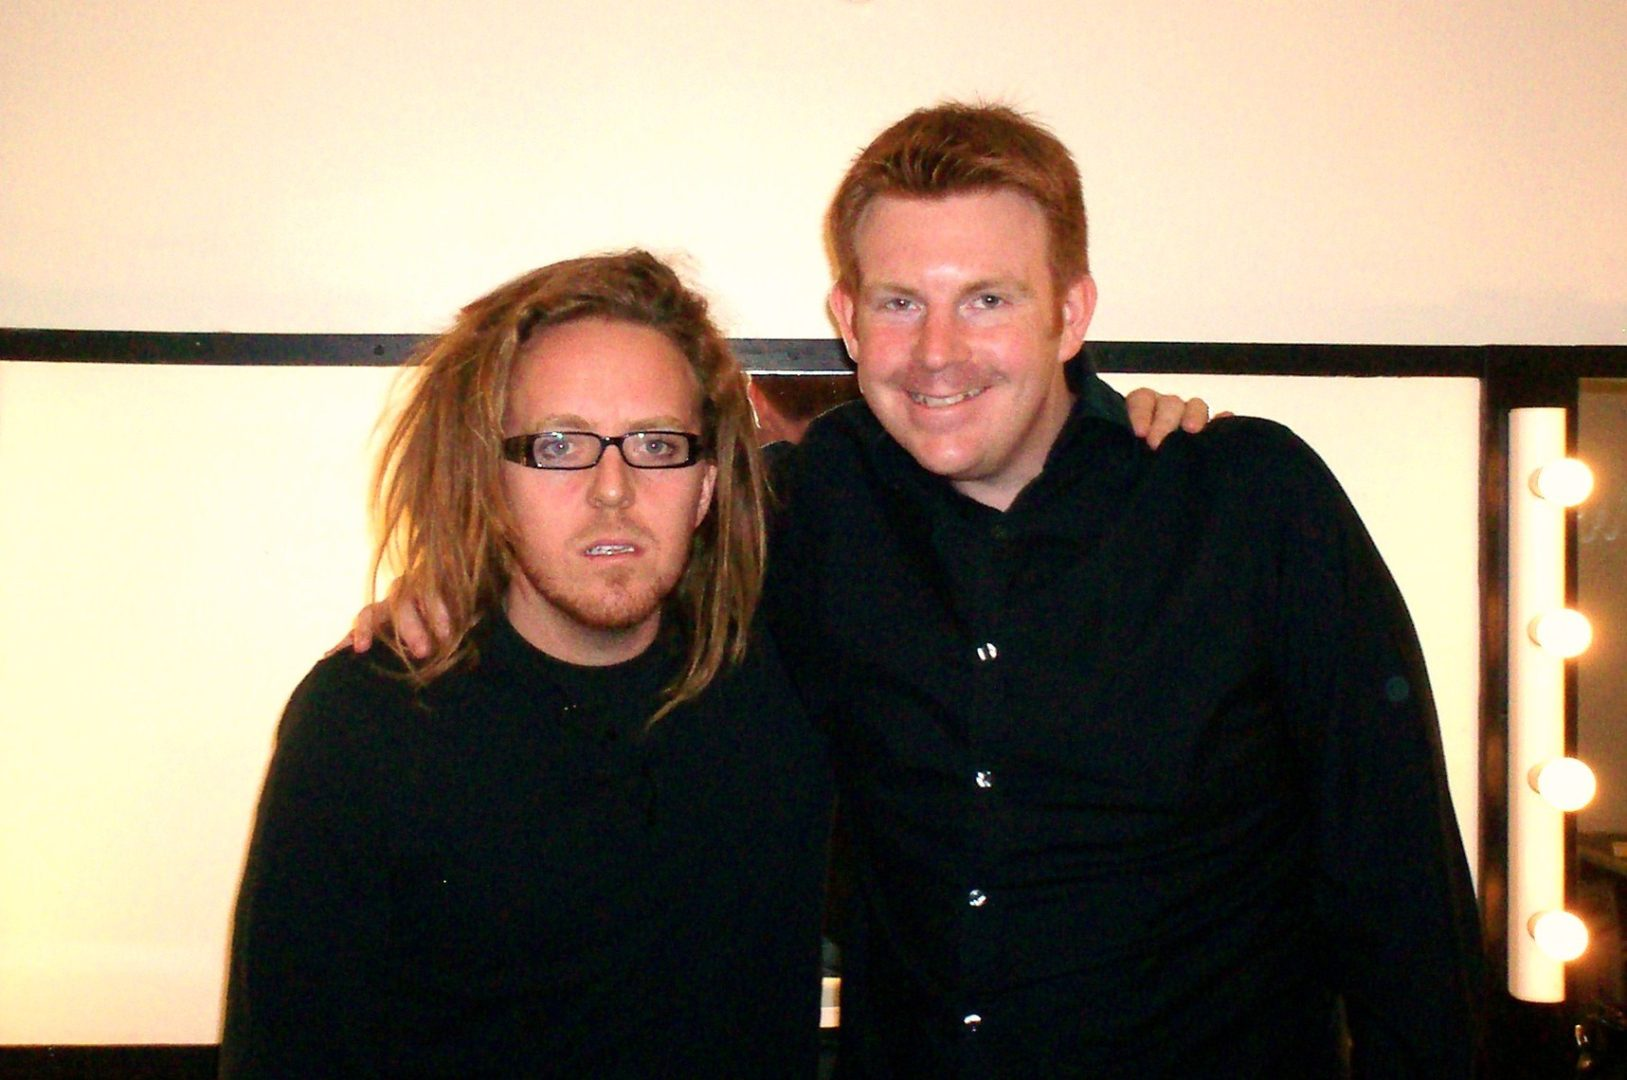 Enjoy Celebrity Radio's Comedian Tim Minchin Interview… Tim Minchin is one of the most loved and respected comedians of his generation. He's not only hysterically […]